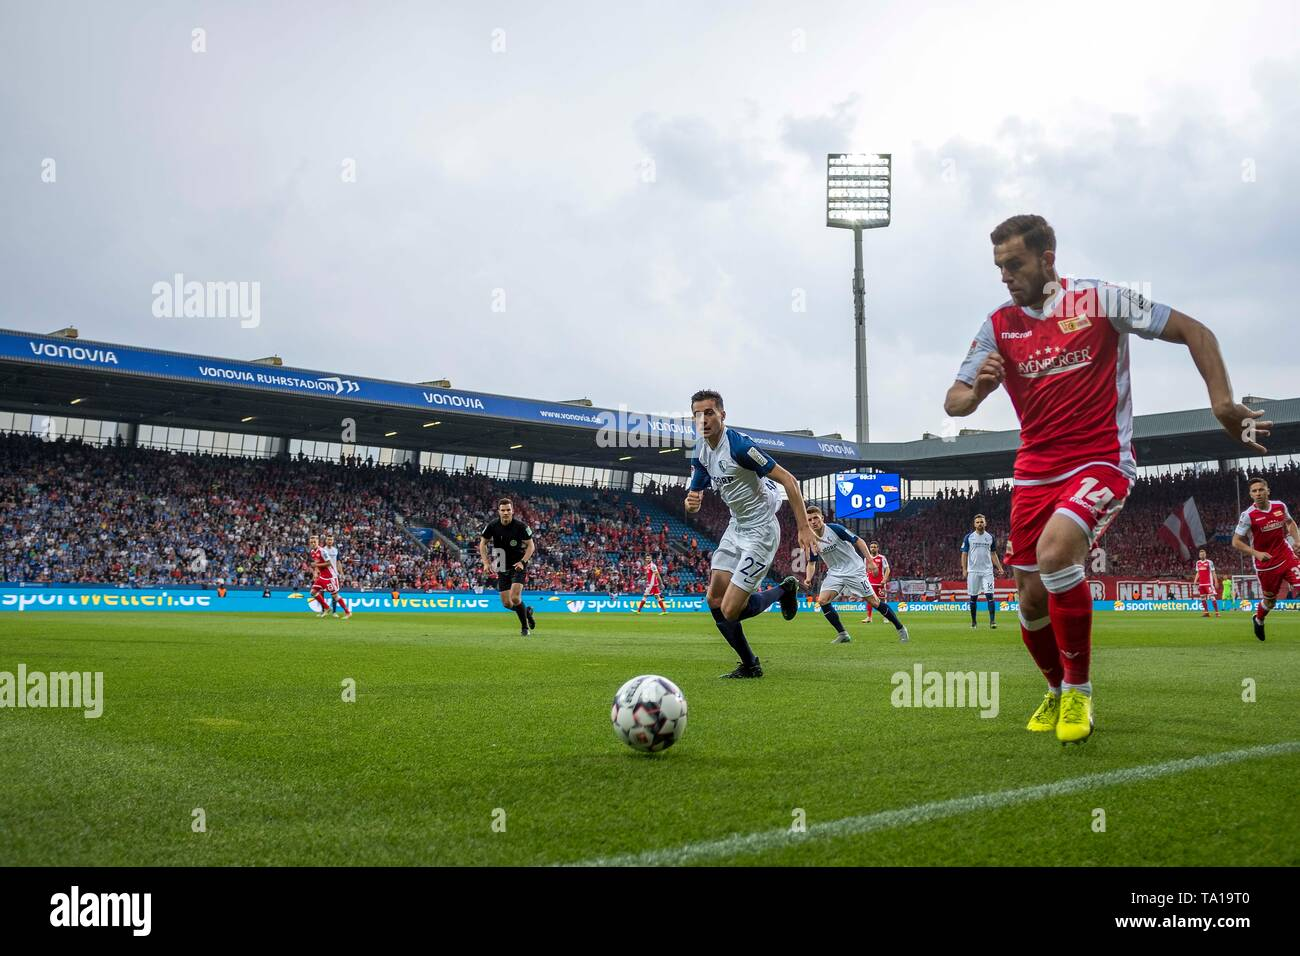 Bochum, Deutschland. 20th May, 2019. Game scene in the Vonovia Stadium in Bochum, overview, action, Ken REICHEL r. (Union) vs Milos PANTOVIC (BO), Football 2. Bundesliga, 34. matchday, VfL Bochum (BO) - Union Berlin (Union) 2: 2, the 19.05.2019 in Bochum/Germany. ## DFL regulations prohibit any use of photographs as image sequences and/or quasi-video ## ¬ | usage worldwide Credit: dpa/Alamy Live News - Stock Image